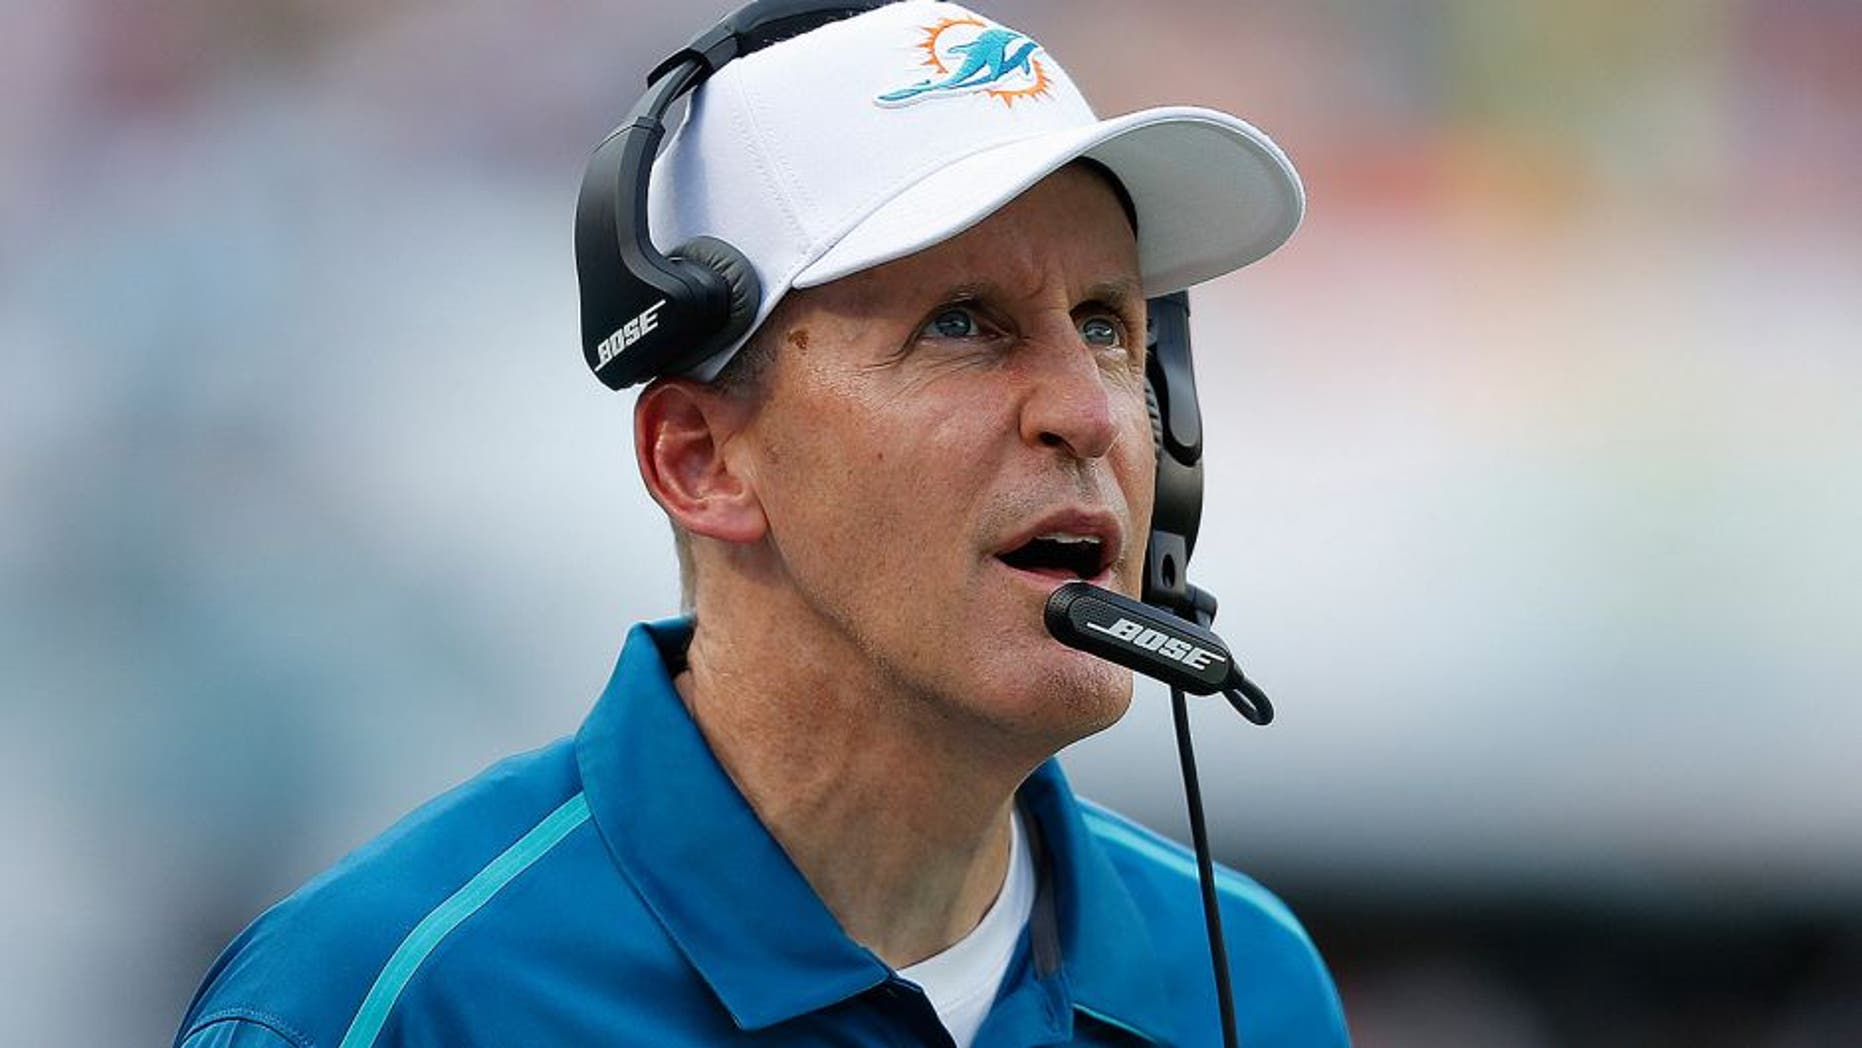 MIAMI GARDENS, FL - DECEMBER 21: Head coach Joe Philbin of the Miami Dolphins watches a replay during fourth quarter action against the Minnesota Vikings on December 21, 2014 at Sun Life Stadium in Miami Gardens, Florida. The Dolphins defeated the Vikings 37-35. (Photo by Joel Auerbach/Getty Images)